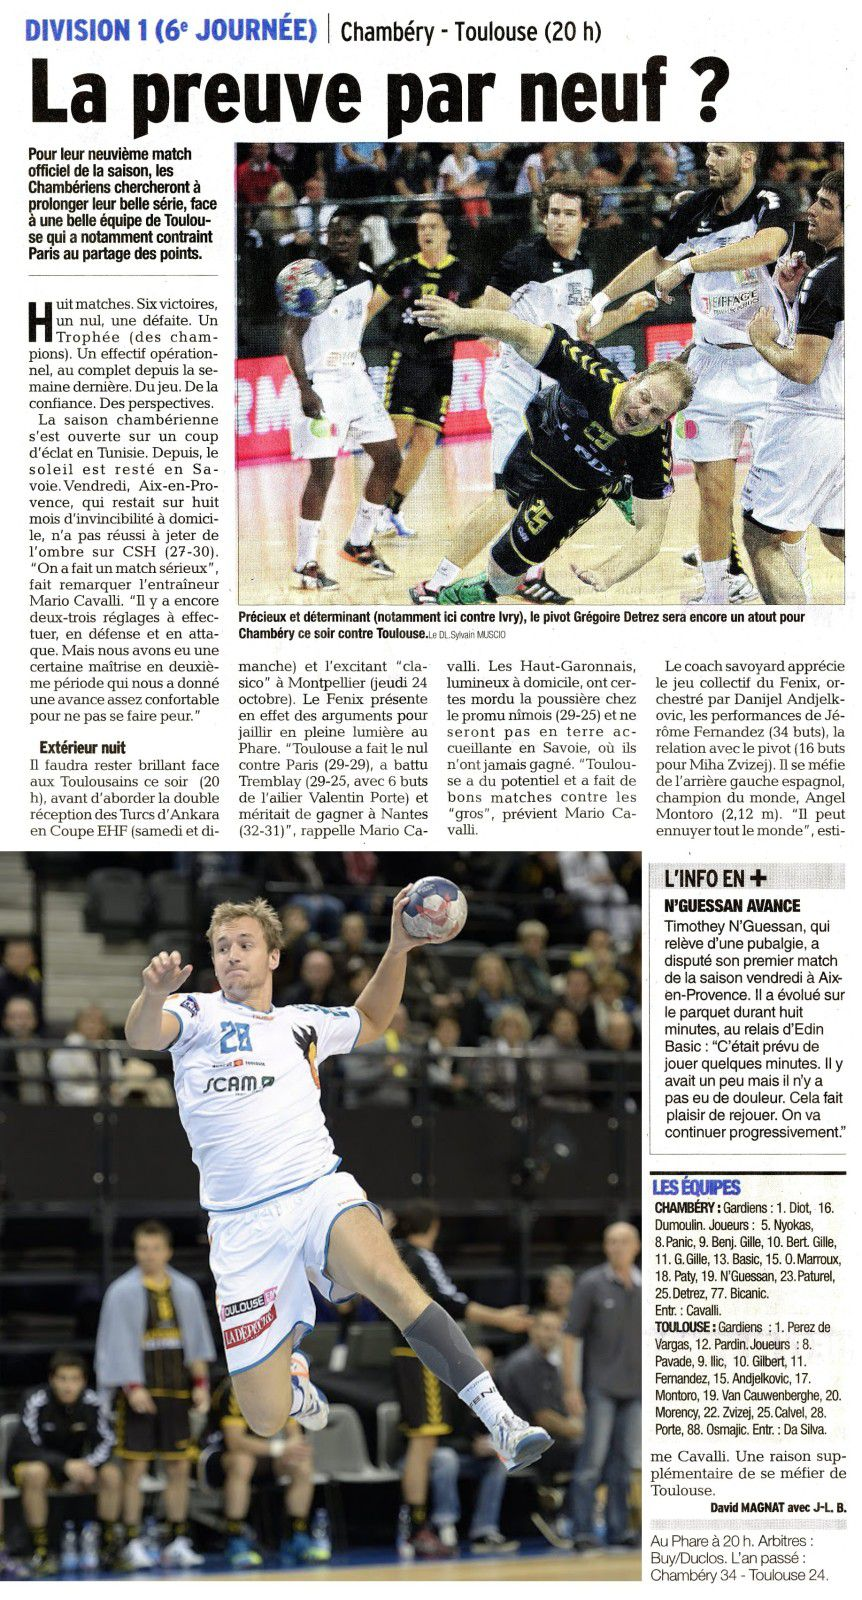 Article-du-16102013-match-avant-CHAMBERY-TOULOUSE--copie-2.jpg